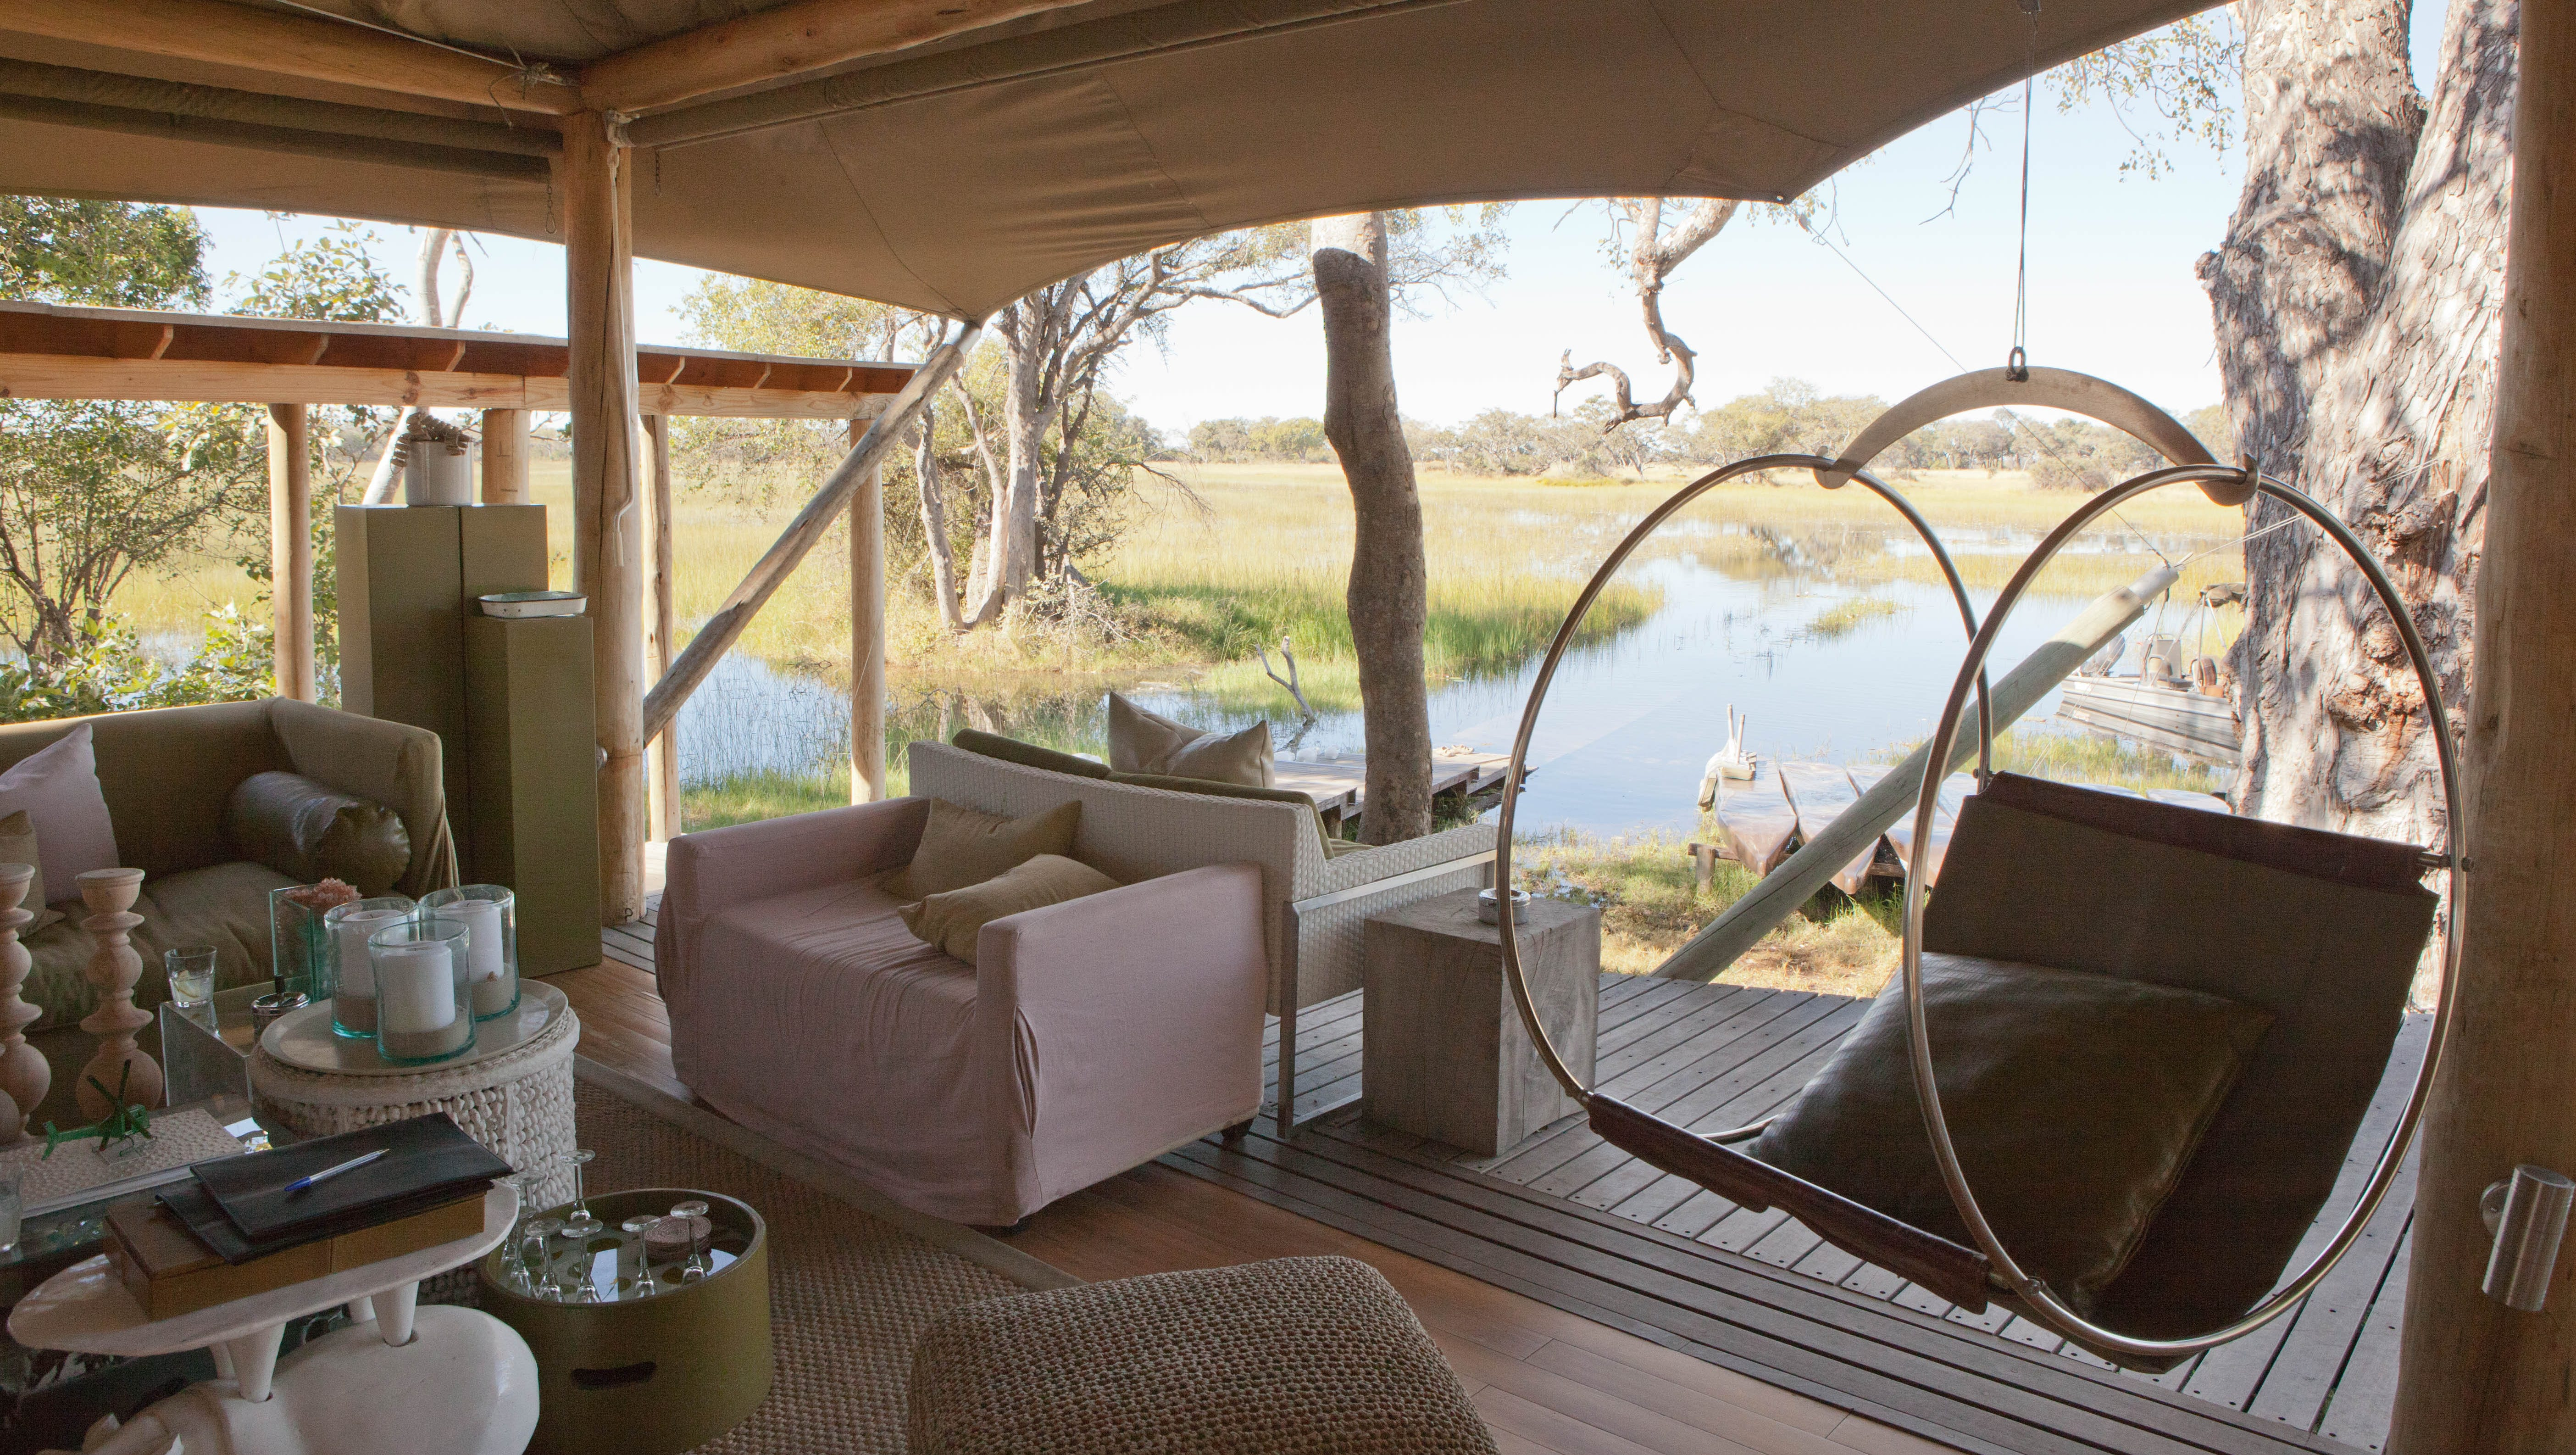 """&Beyond Xaranna Okavango Delta Camp, Botswana: This ultra-remote, luxurious safari lodge on an island in Botswana's Okavango Delta isn't a hotel; it's an experience, where everything -- including the excellent food and the guided excursions (game drives, bush walks, river cruises) -- is included in the price of the stay. Guests can get up close to exotic wildlife on both land and water (think: lions and hippos), and even arriving to the property is an adventure, requiring transport by small plane, safari vehicle, and a boat. The nine safari """"tents"""" are fully screened in and thoroughly high-end, with huge soaking tubs, four-poster beds, lots of wood, and private pools. The decor blends rustic charm with bright, contemporary style -- not an obvious combination, but it mostly works."""